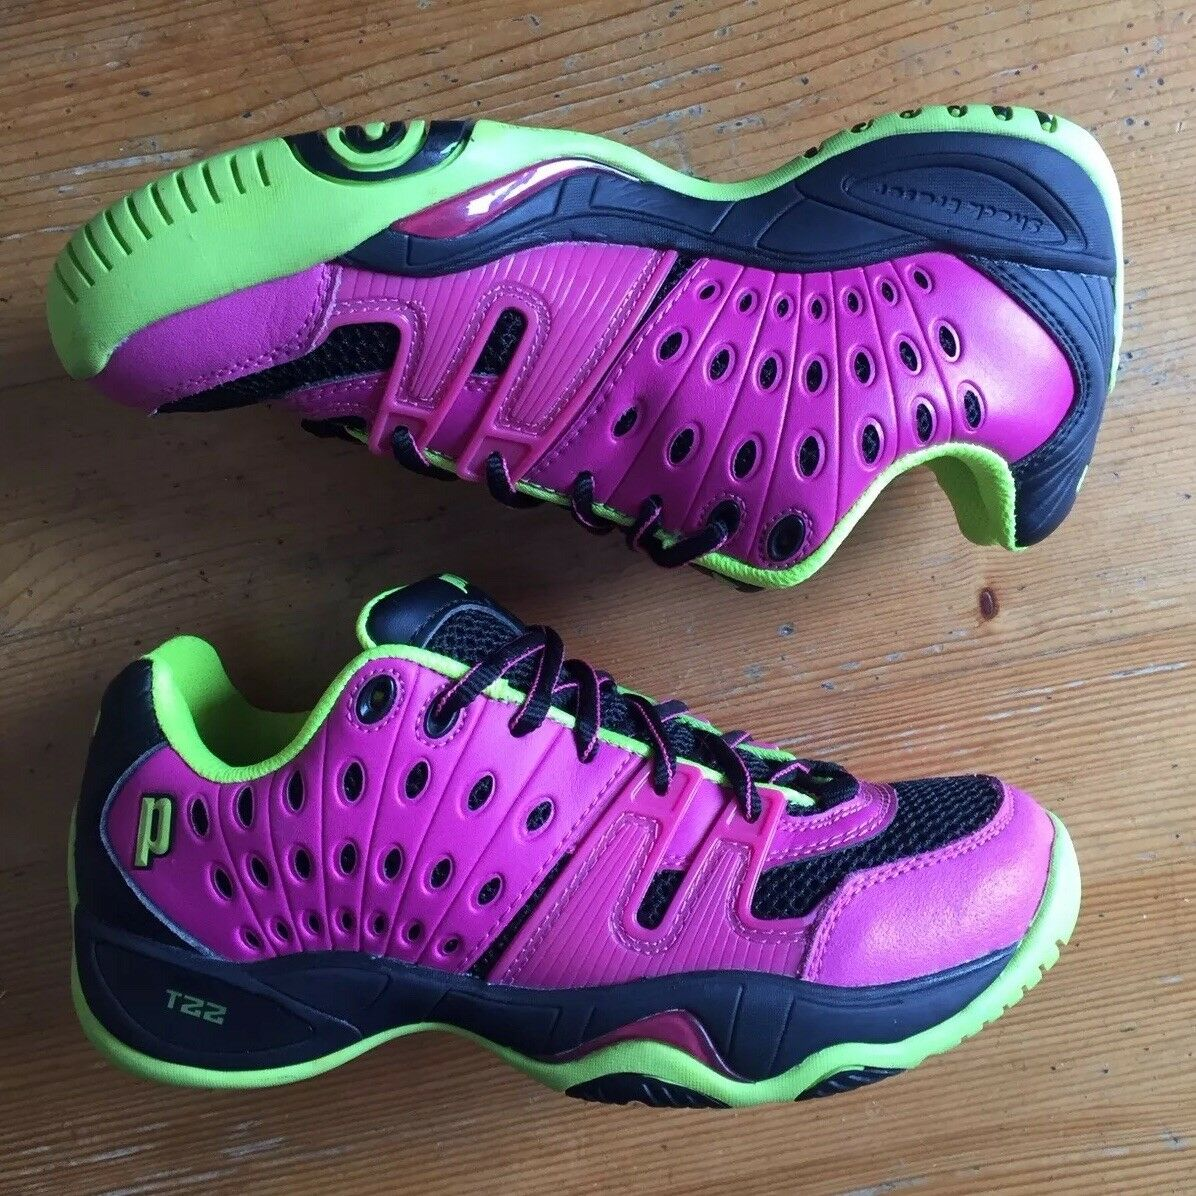 Prince T22 Tennis shoes Women's UK Size 4.5 4.5 4.5 EU 37.5 Pink Neon Yellow Trainers ccaf6c